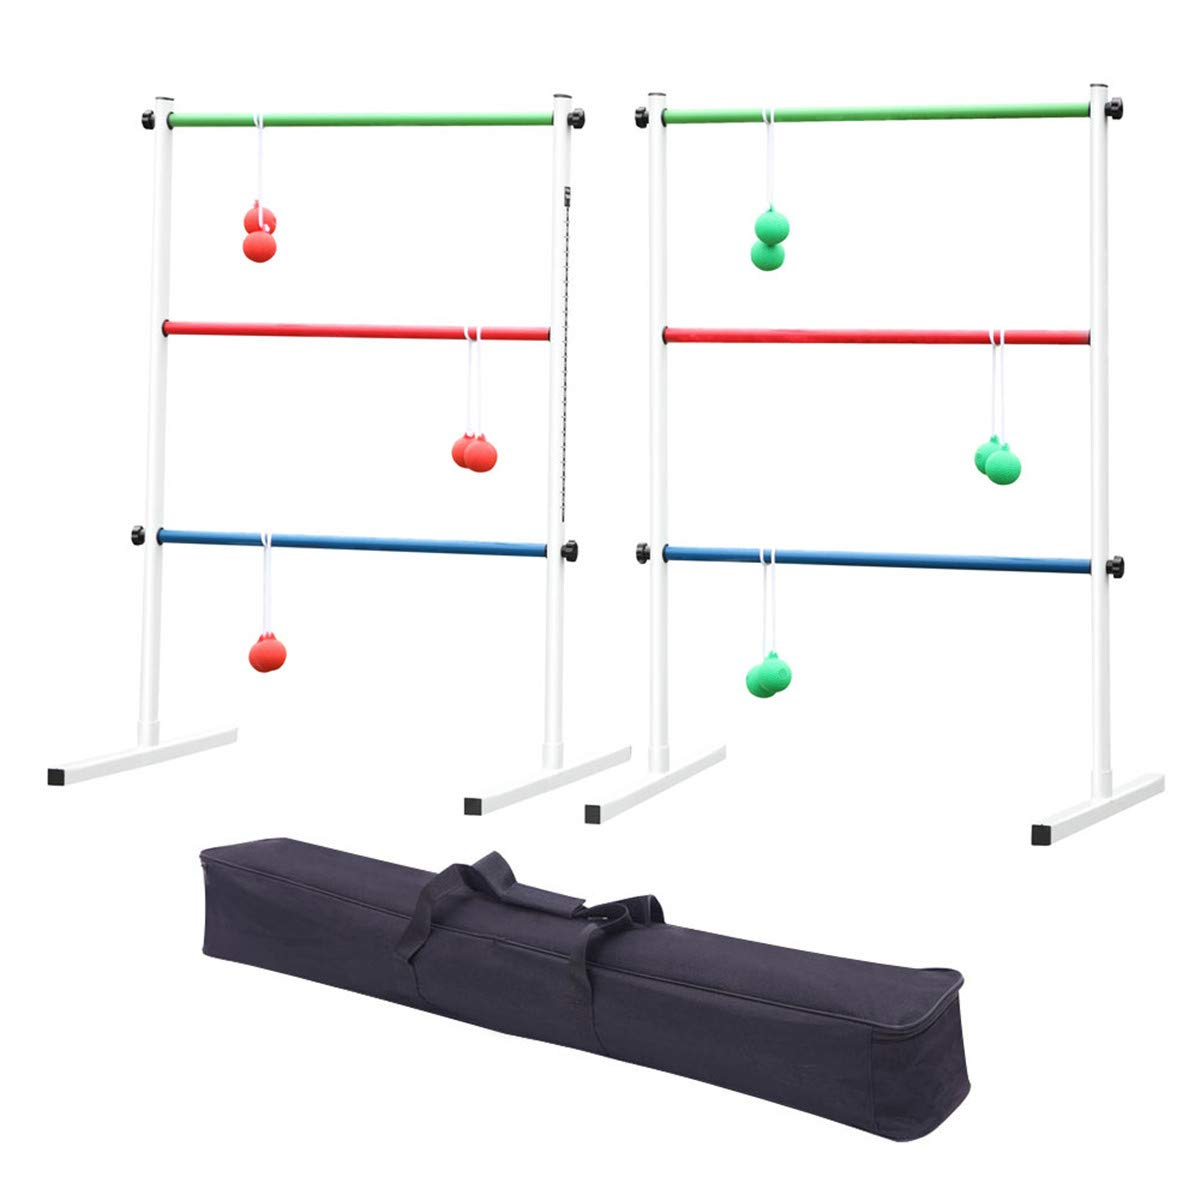 LeiAn Ladder Toss Outdoor Lawn Game Set with Carrying Case for Children and Adults Fun Game for Yard by LeiAn